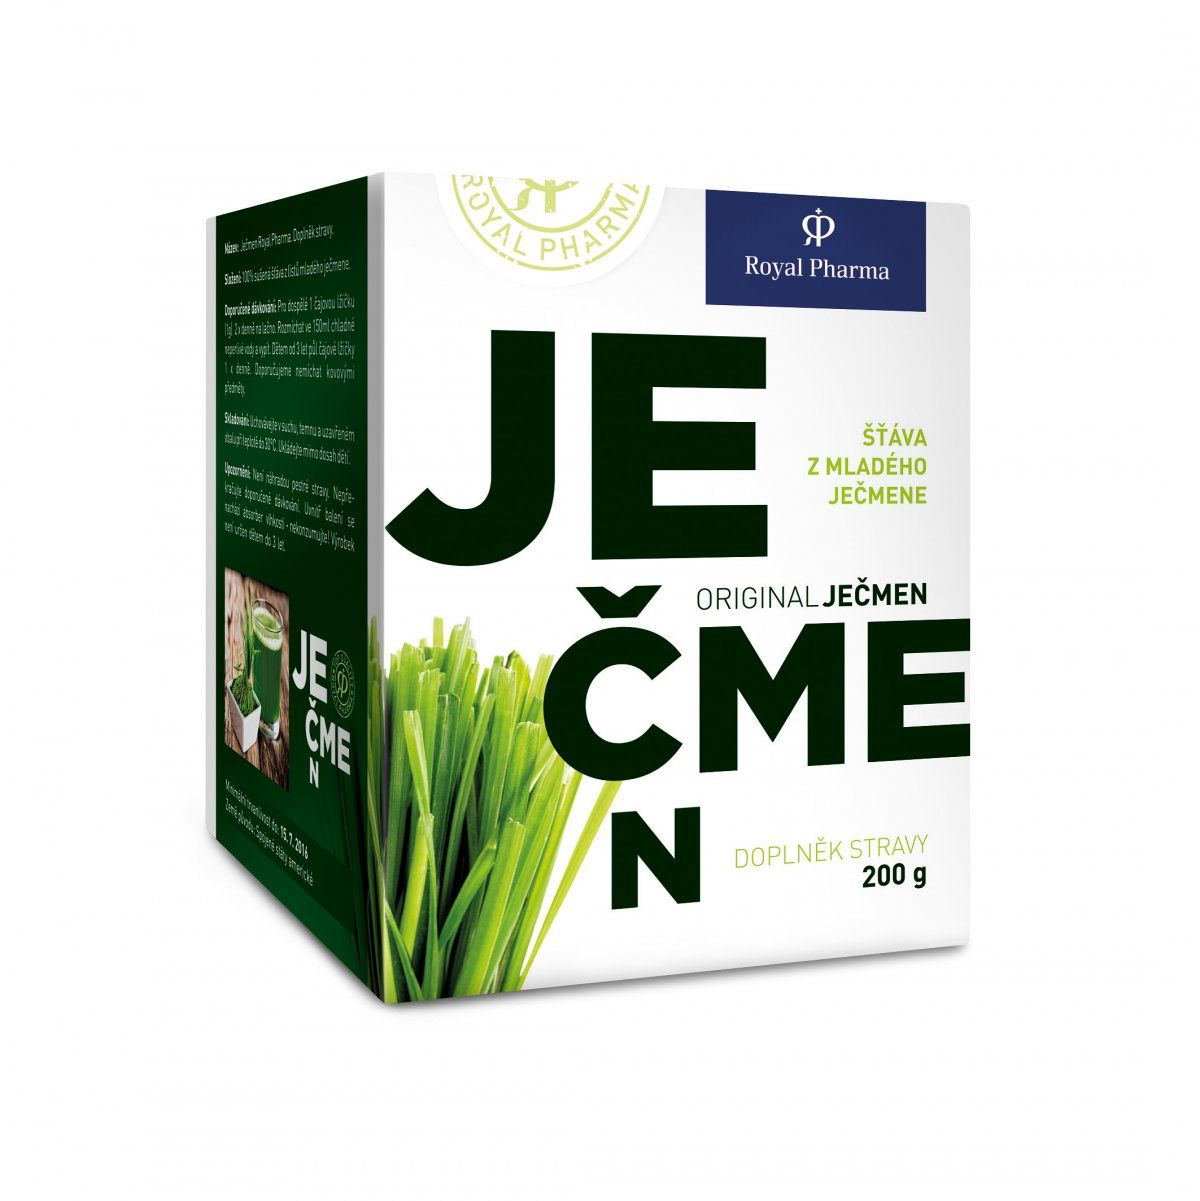 Ječmen Royal Pharma Gramáž: 200g